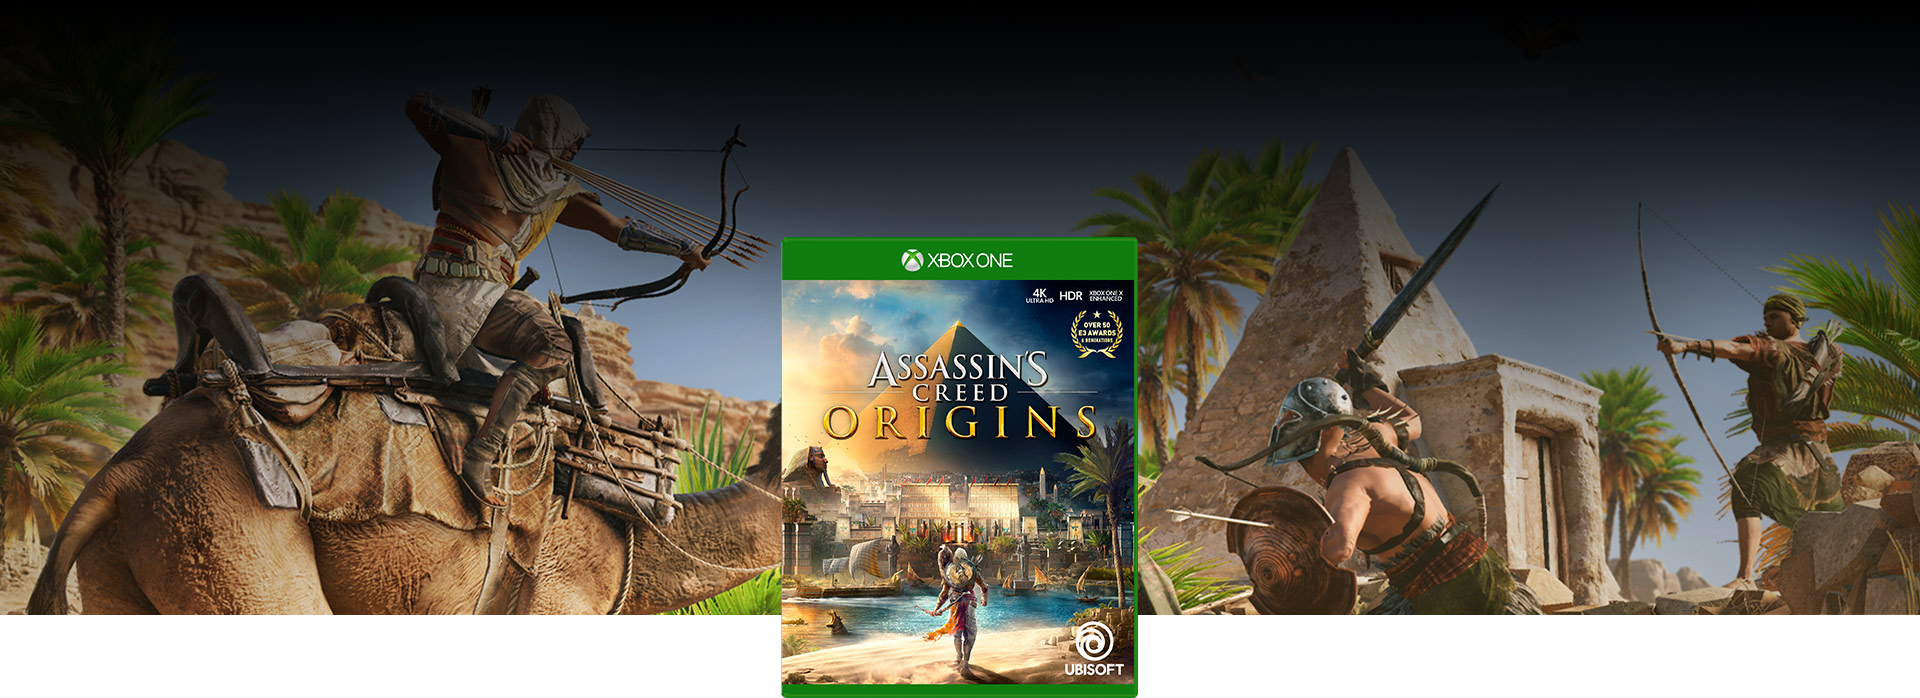 Assassin's Creed Origins box shot over a background of Bayek riding a camel shooting arrows at a group of enemies